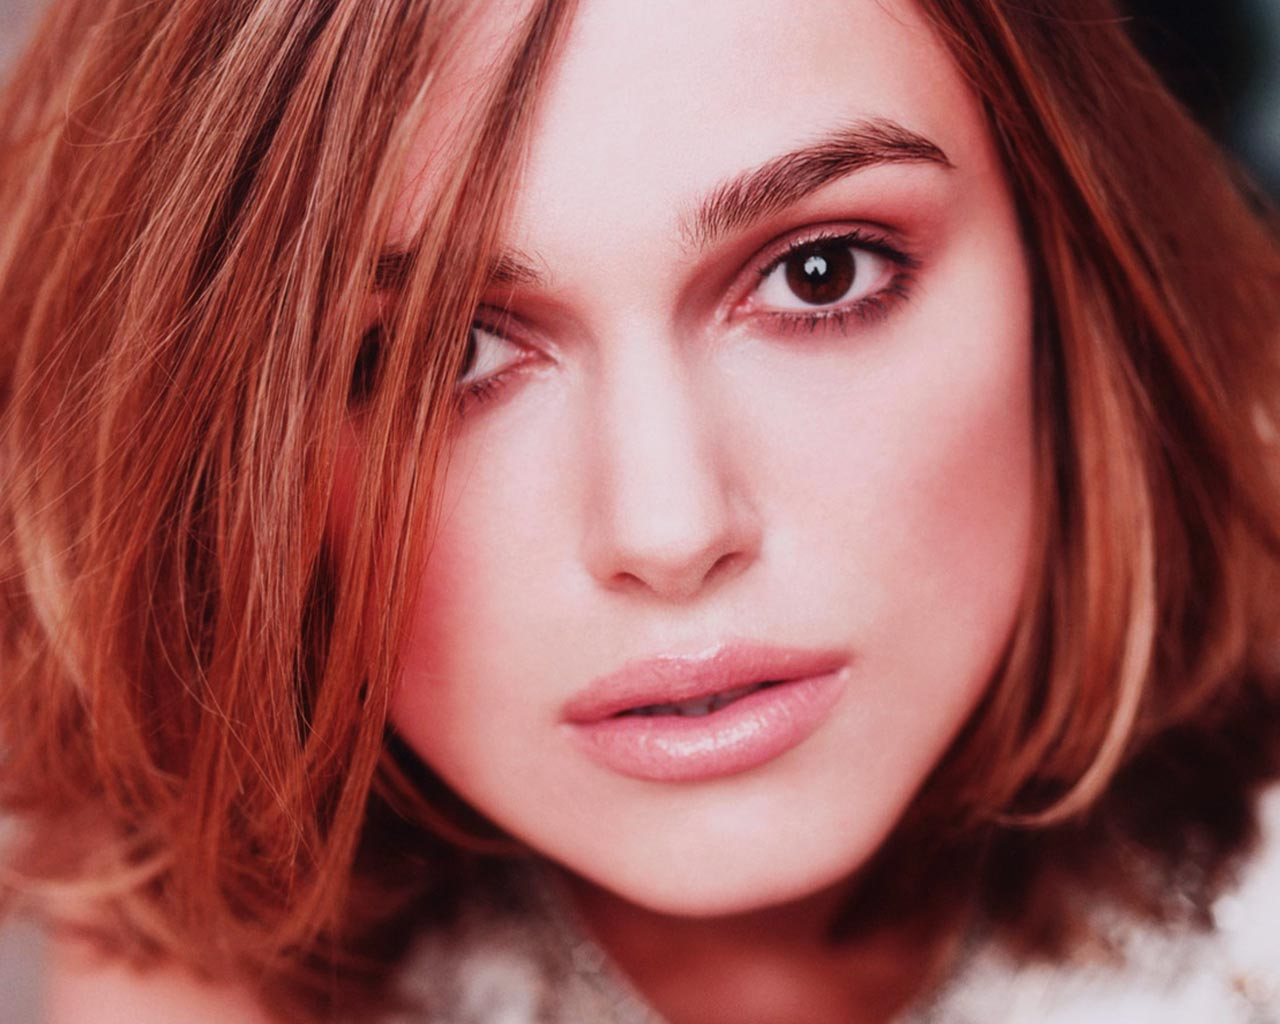 Keira Knightley Romance Hairstyles Pictures, Long Hairstyle 2013, Hairstyle 2013, New Long Hairstyle 2013, Celebrity Long Romance Hairstyles 2024